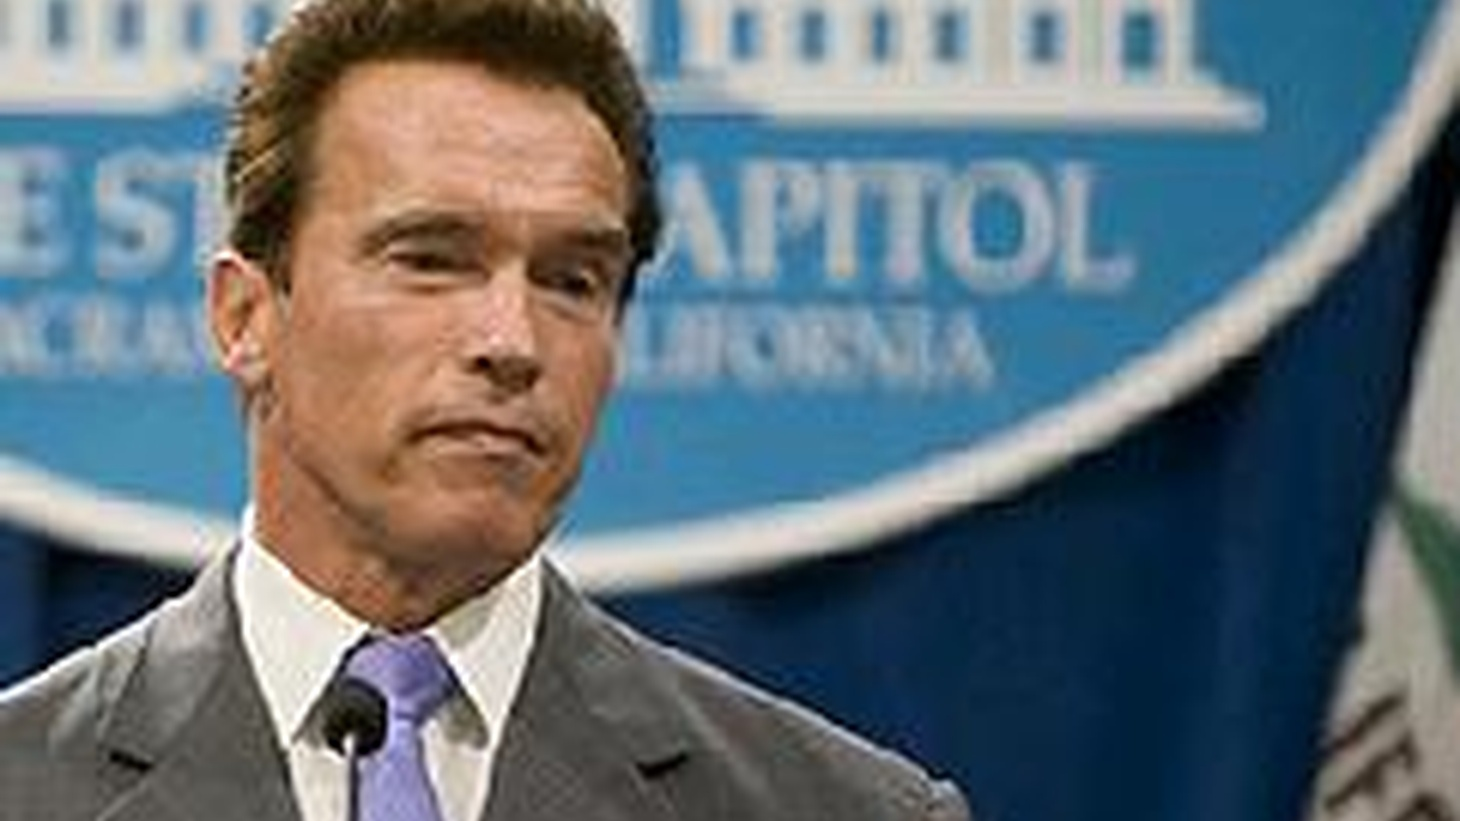 Governor Schwarzenegger's wrong about some things, but he's right that the state needs a tax increase. That's according to the Legislative Analyst, Sacramento's most respected non-partisan voice. We talk with him. Also, the US Supreme Court rules against whales, and they're having an earthquake tomorrow. Come on down.